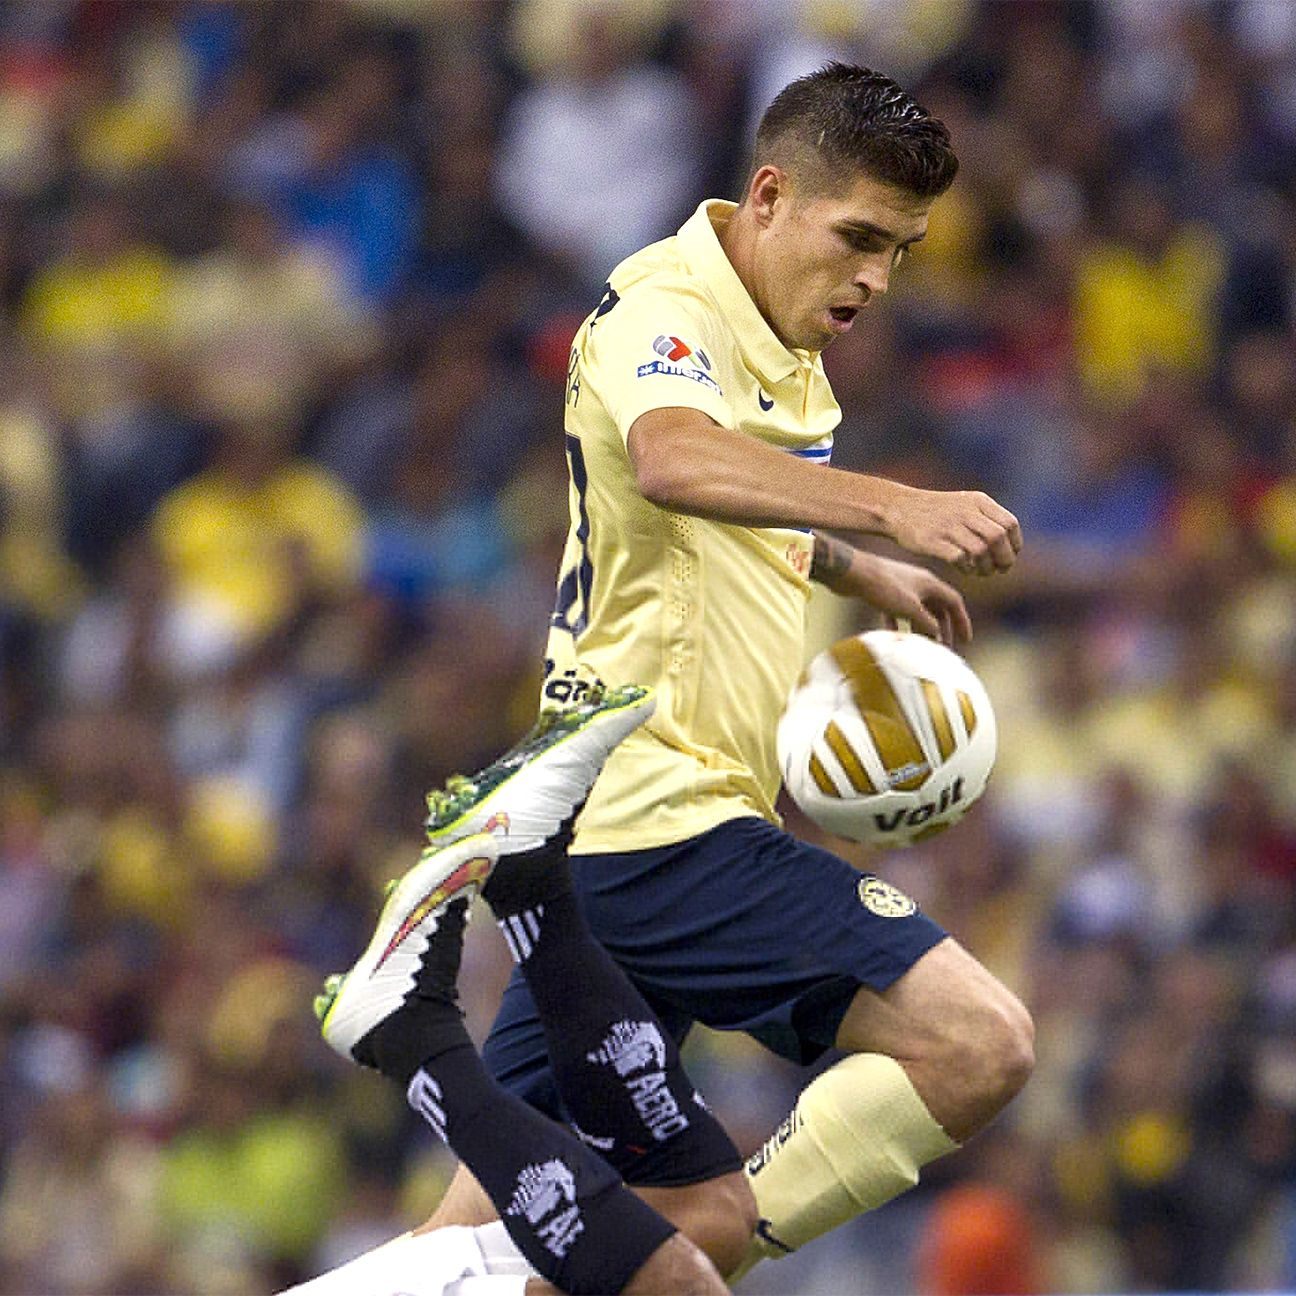 Mexican-American Ventura Alvarado of reigning Liga MX champions Club America is poised to receive a U.S. call-up.